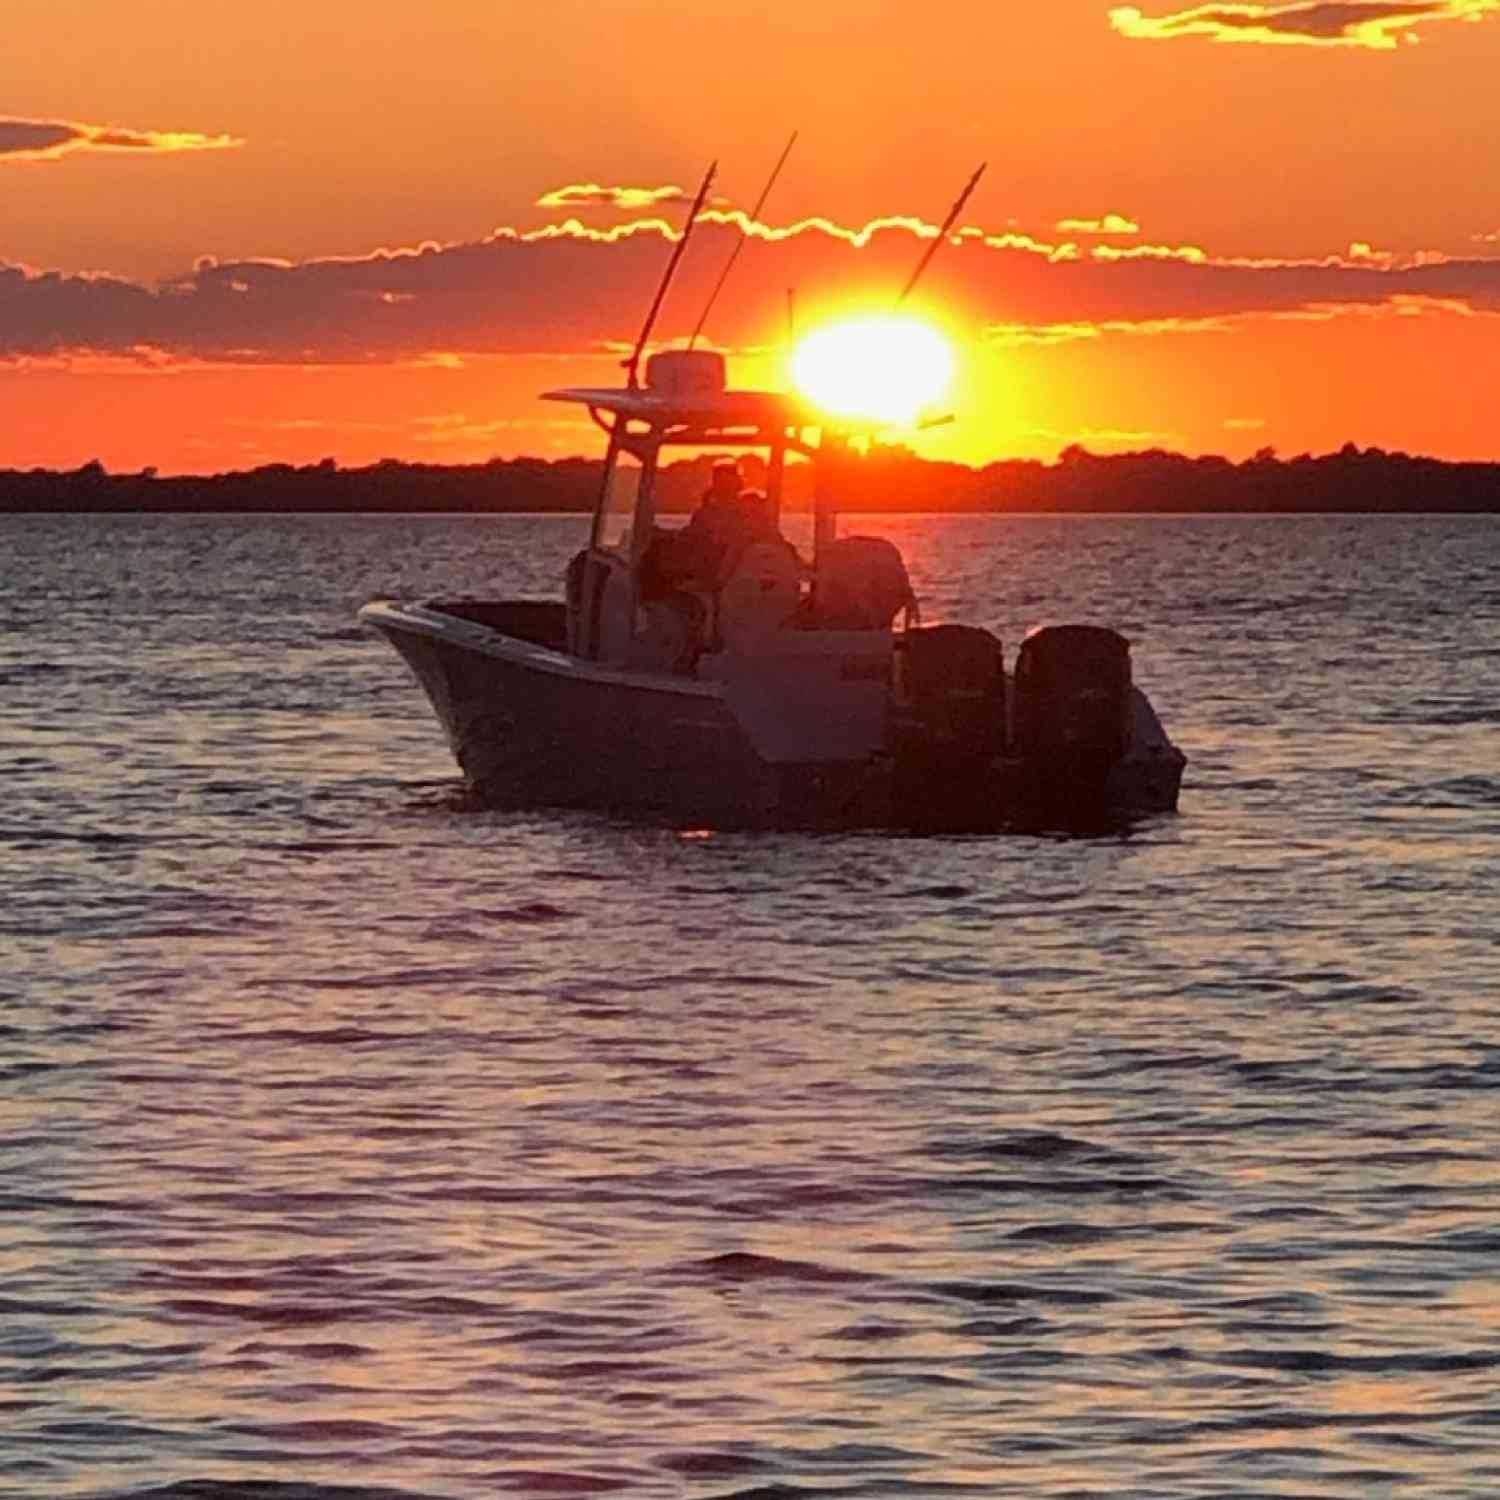 Title: End to a great day at the beach with incredible friends - On board their Sportsman Open 282TE Center Console - Location: Dodge Bay on the St. Lawrence River. Participating in the Photo Contest #SportsmanAugust2020